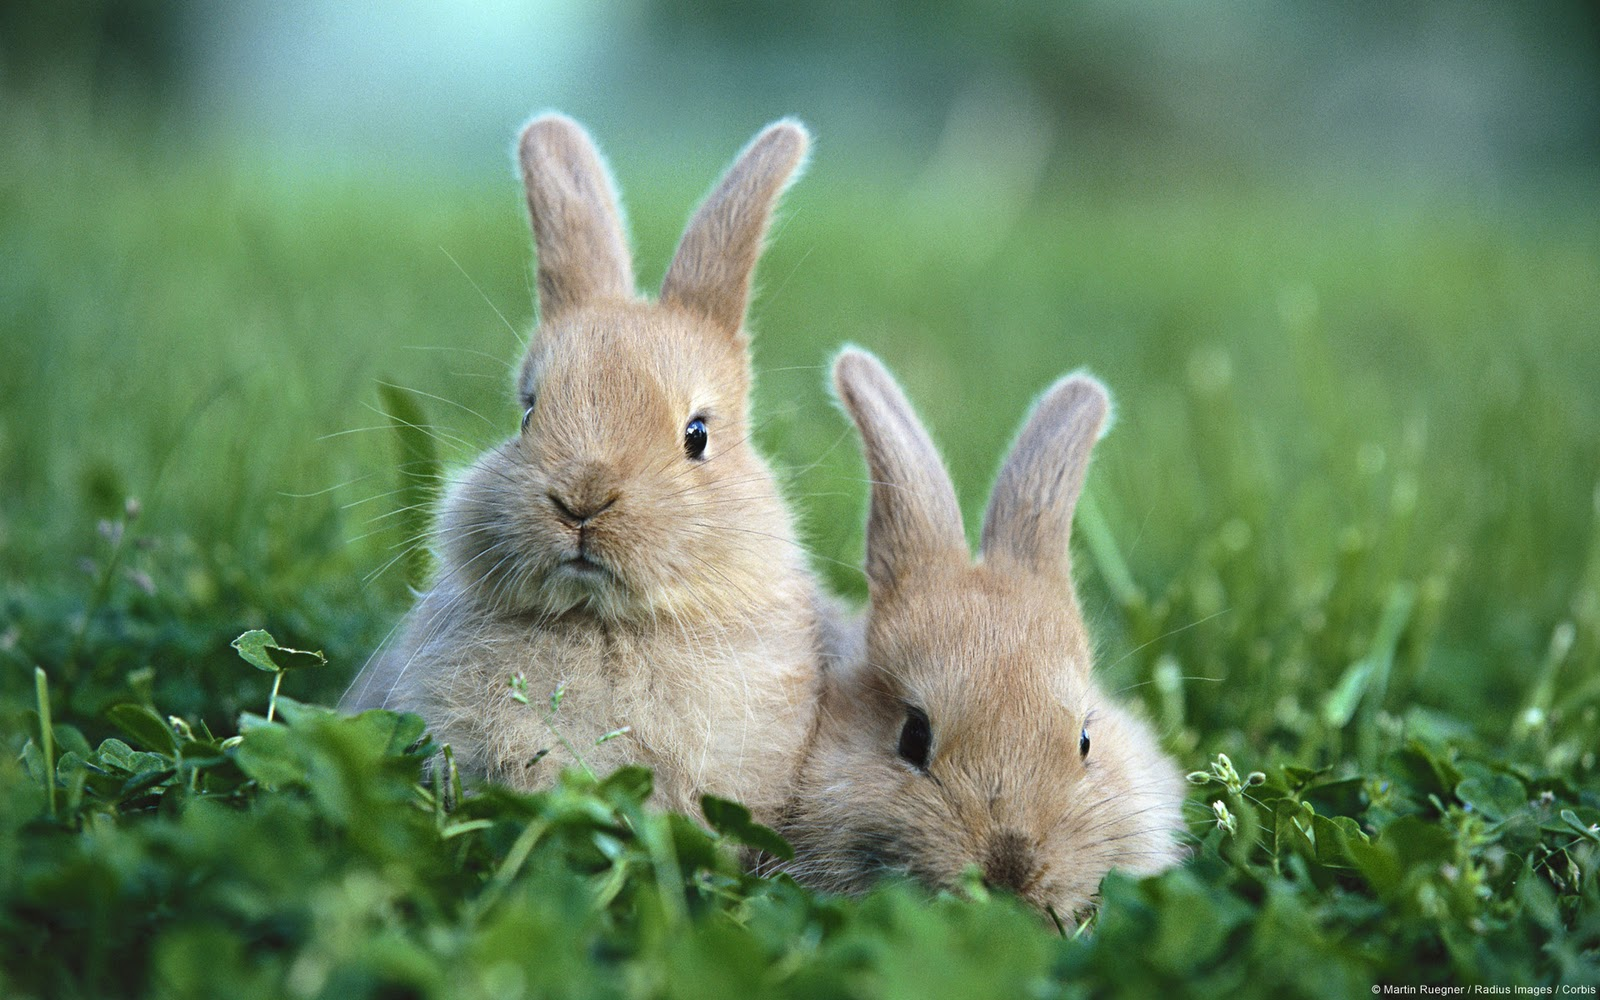 Cute Rabbits In Photos Funny And Cute Animals